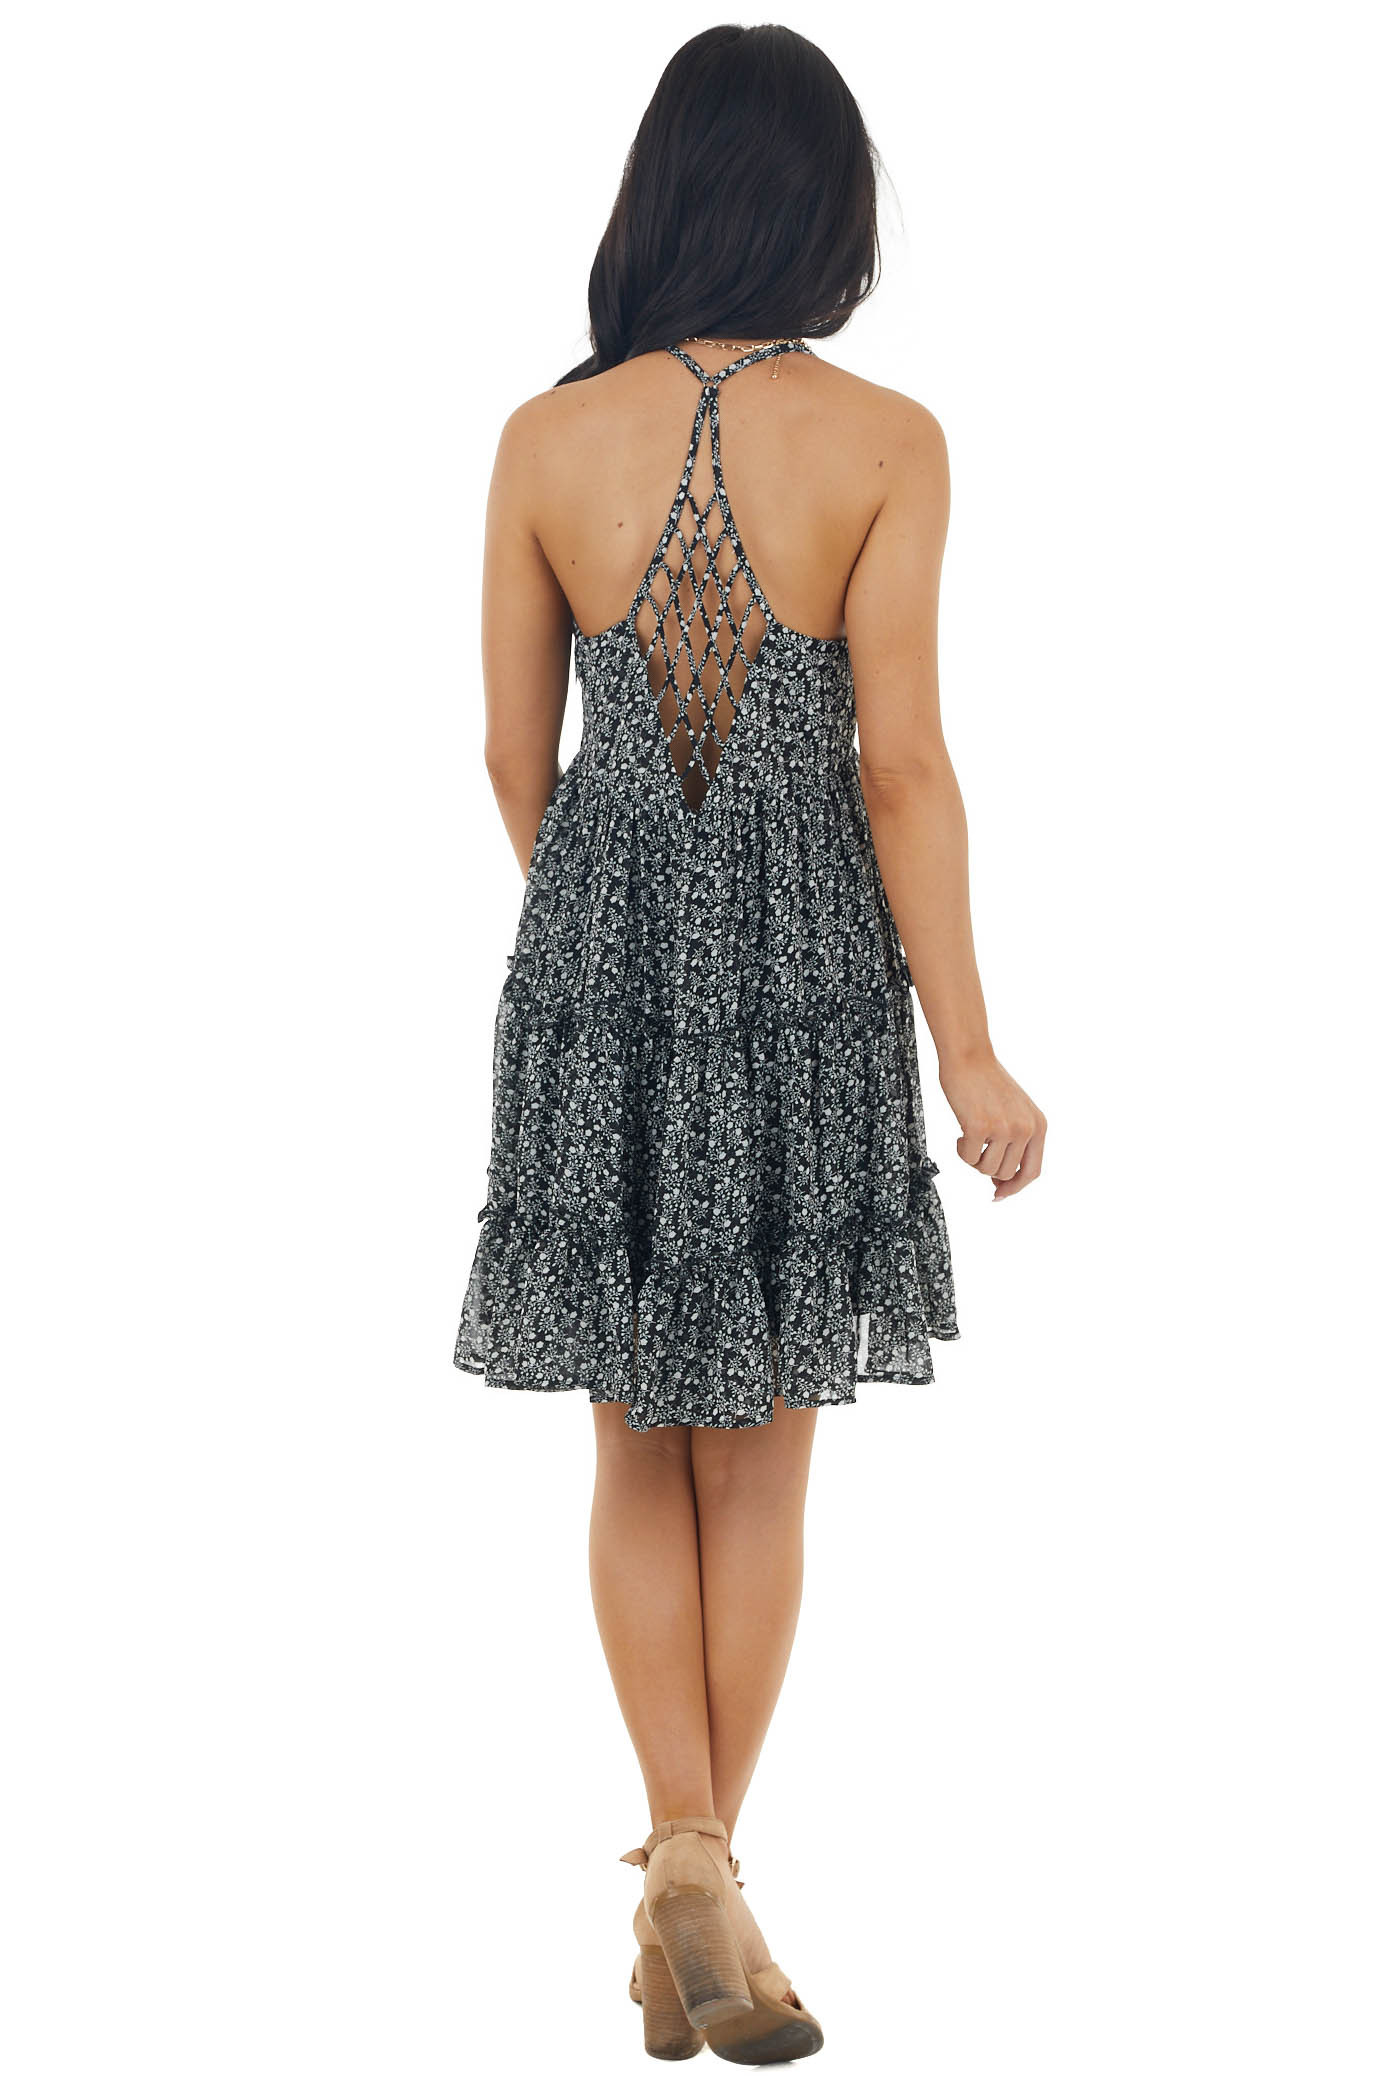 Black Ditsy Floral Sleeveless Tiered Dress with Caged Back